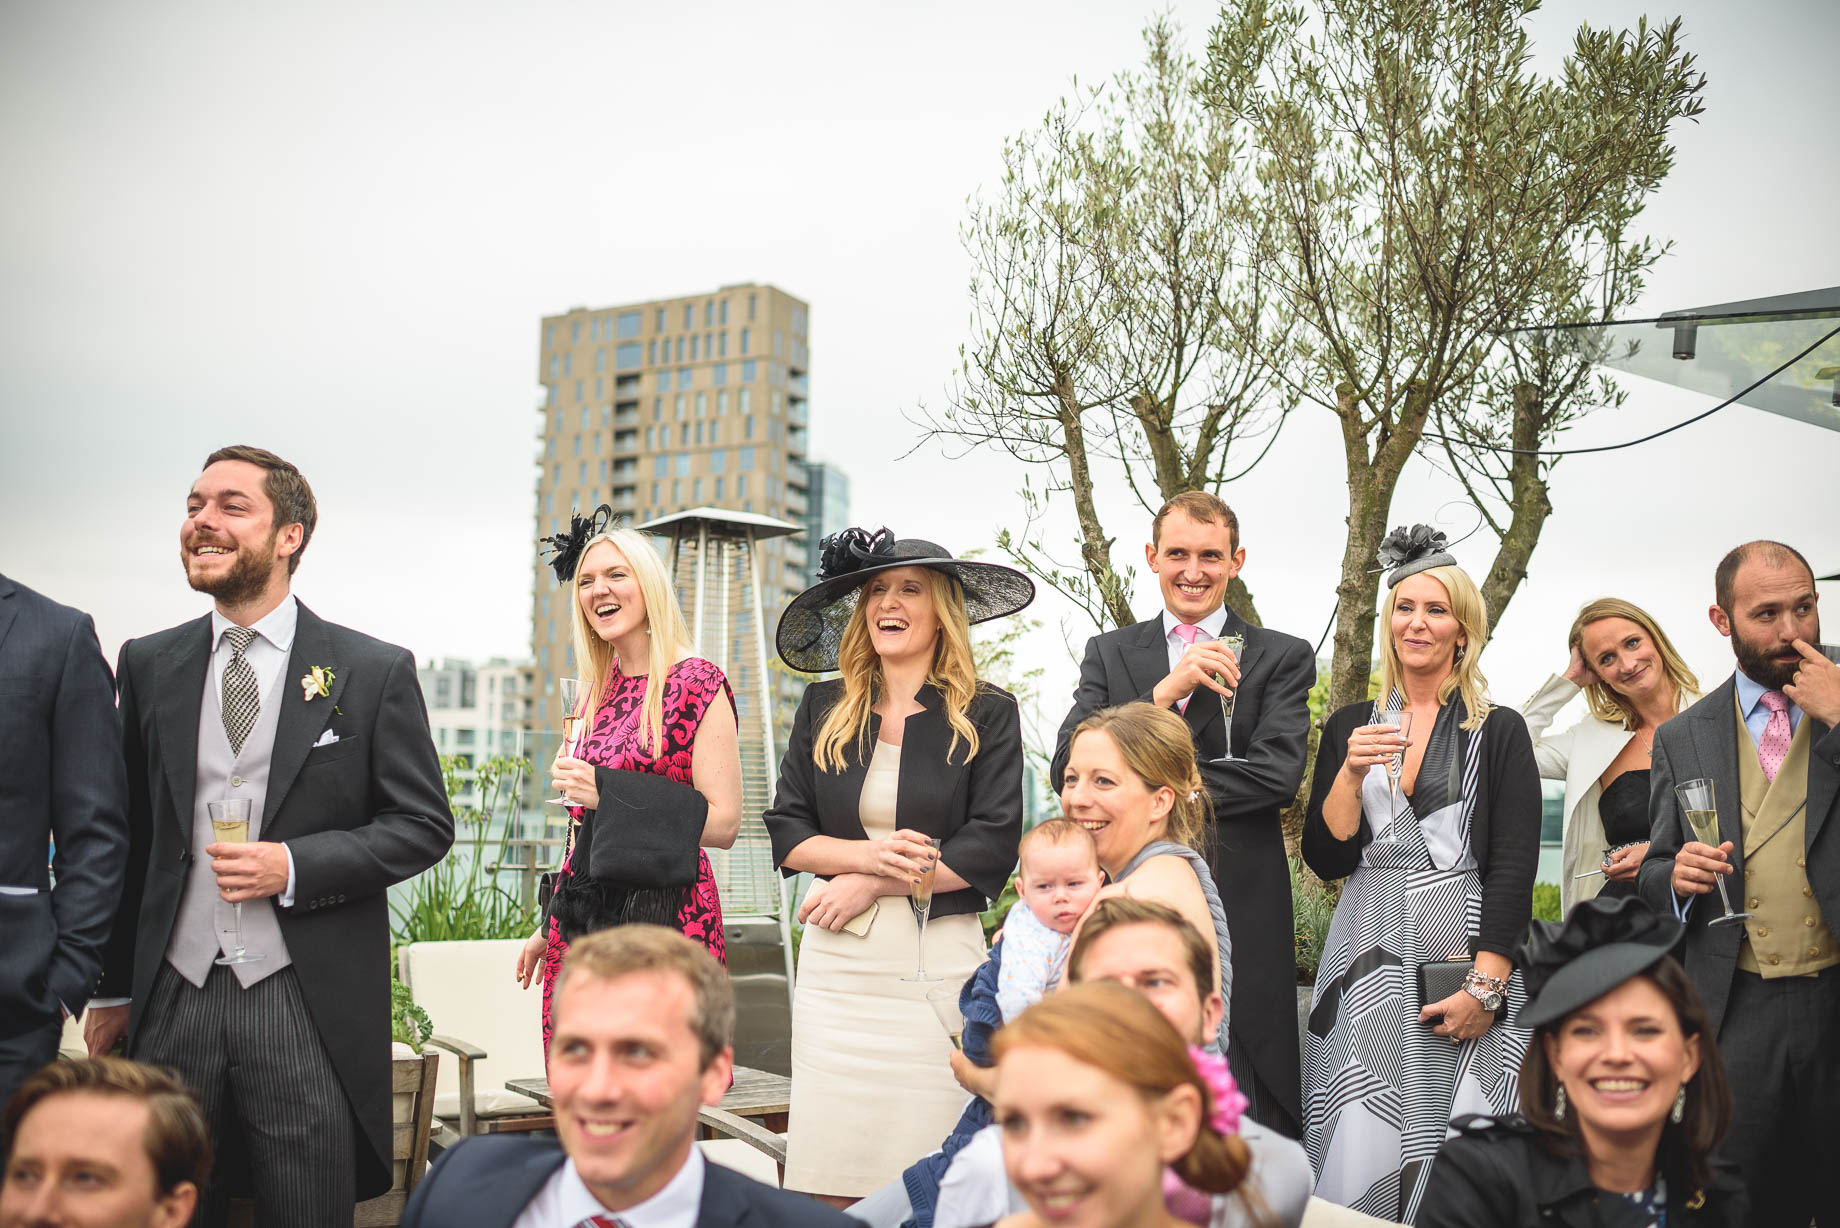 Shoreditch wedding photography - Guy Collier - Kat and Henry (169 of 200)